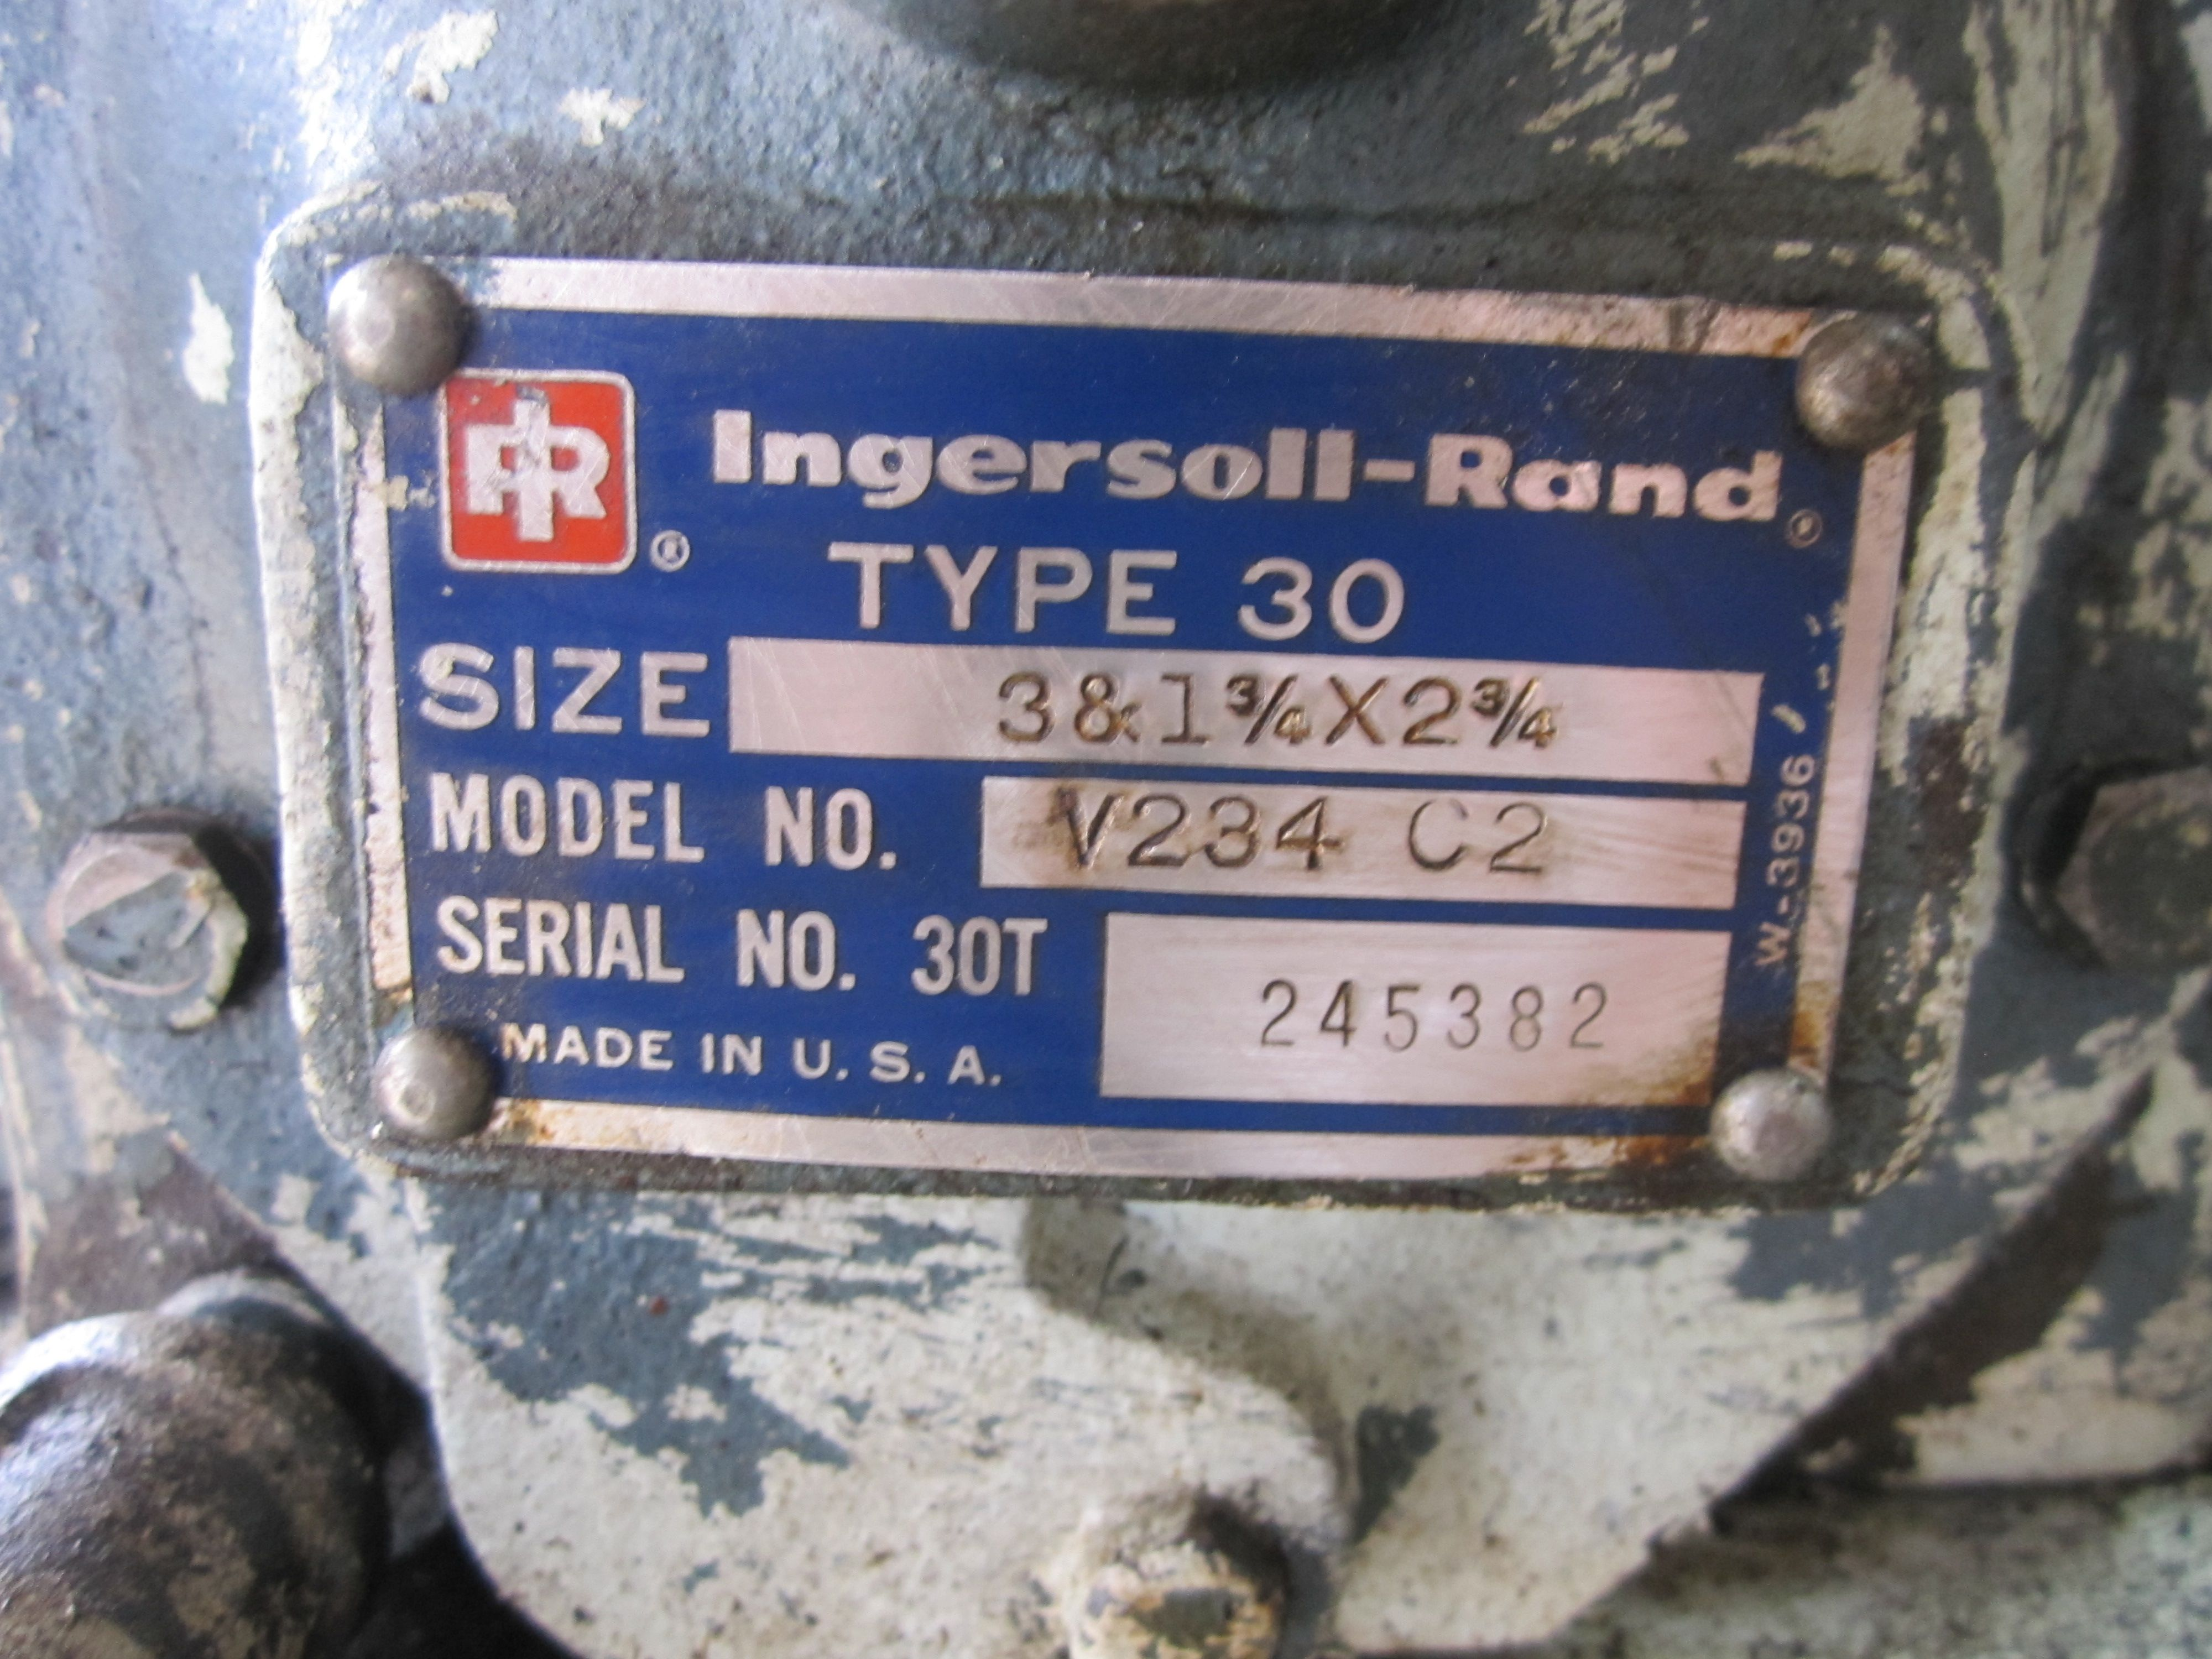 contactor wiring diagram single phase motor 12 lead ingersoll-rand type 30 model v234 c2